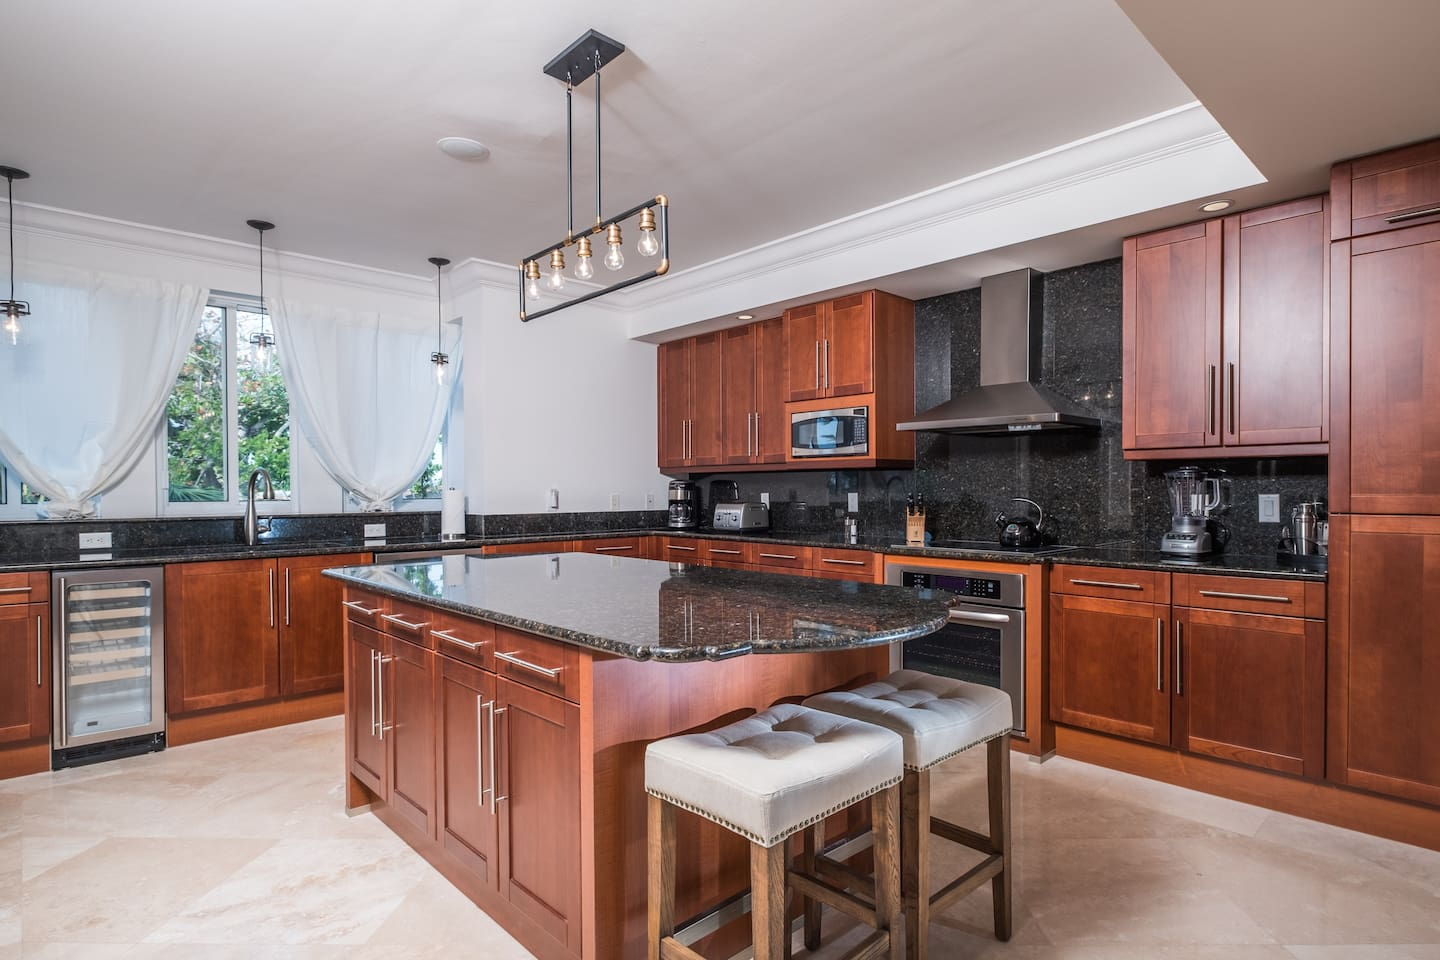 Spacious Kitchen with Center Island & Adjoining Laundry Room